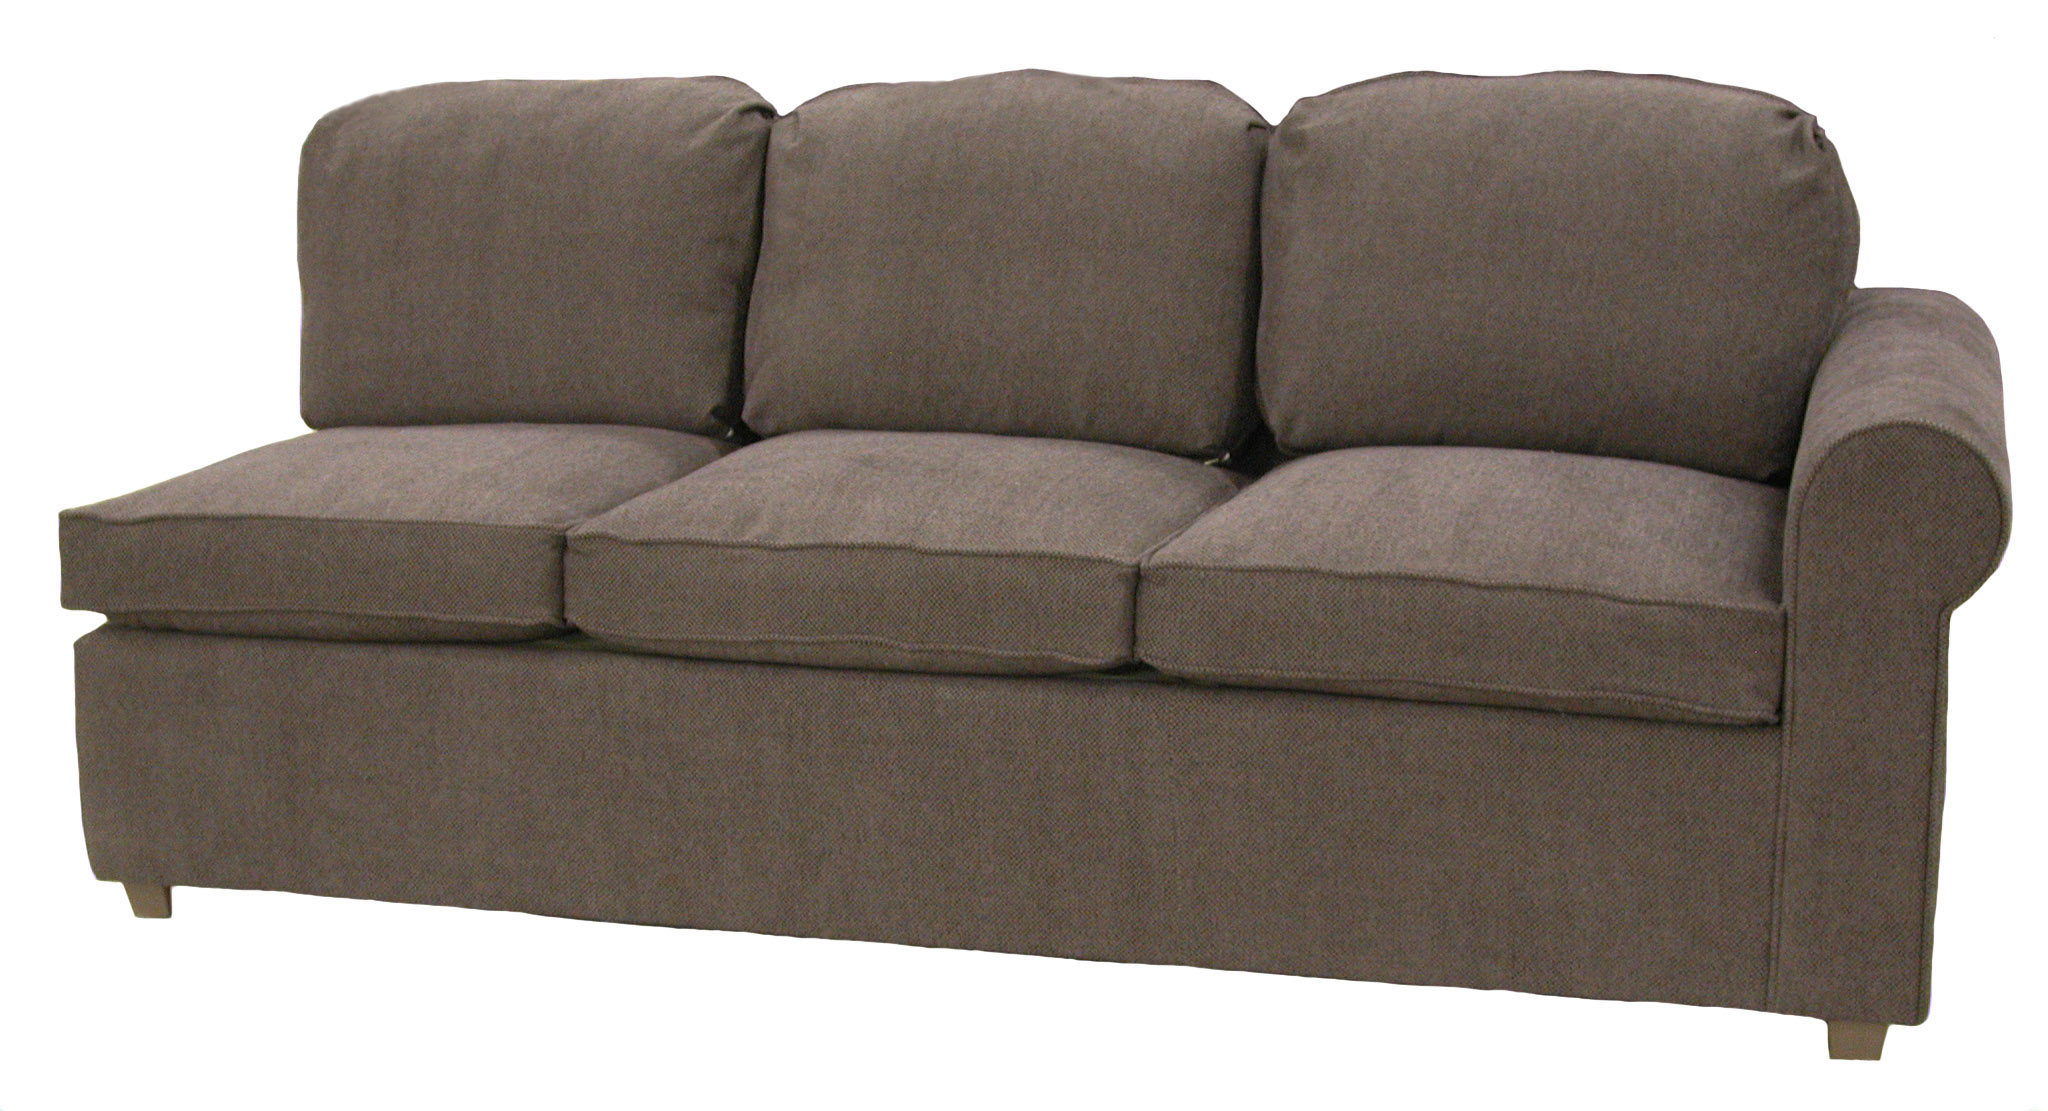 Roth 1-Arm Queen Sleeper Sofa Right Facing